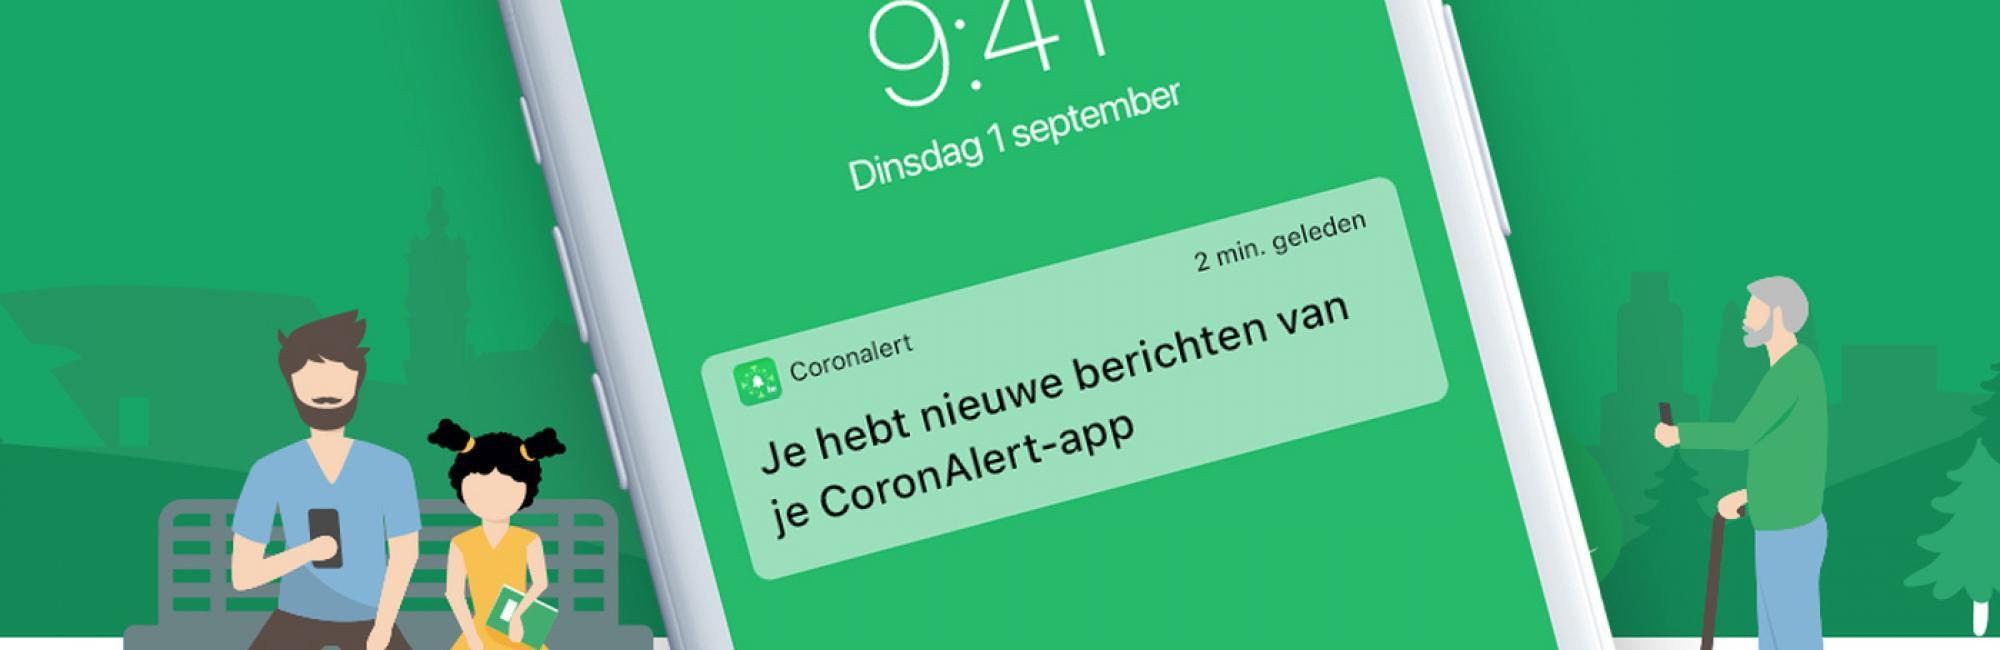 Coronalert app met notificatie